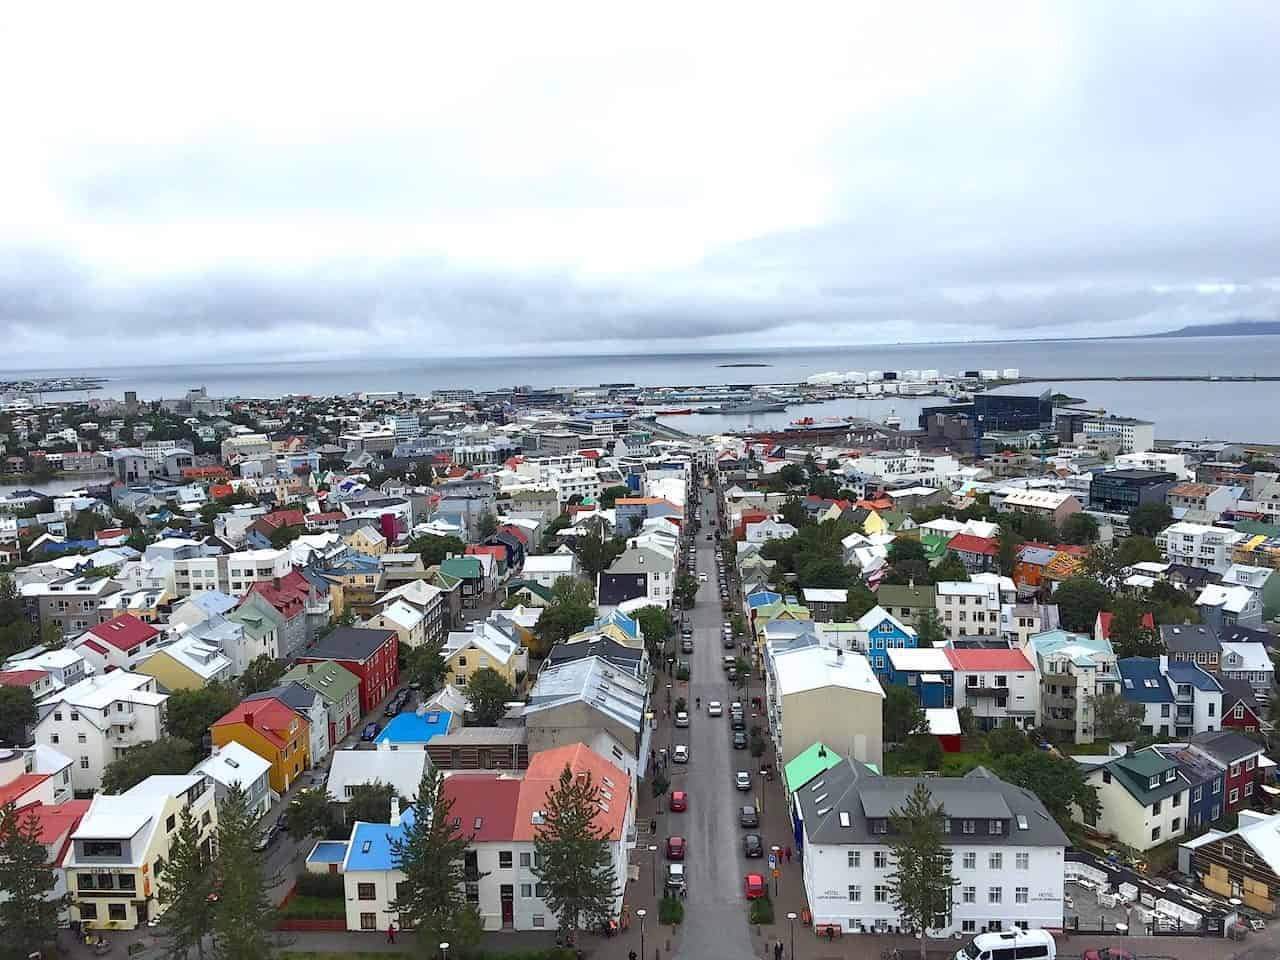 One Day in Reykjavik